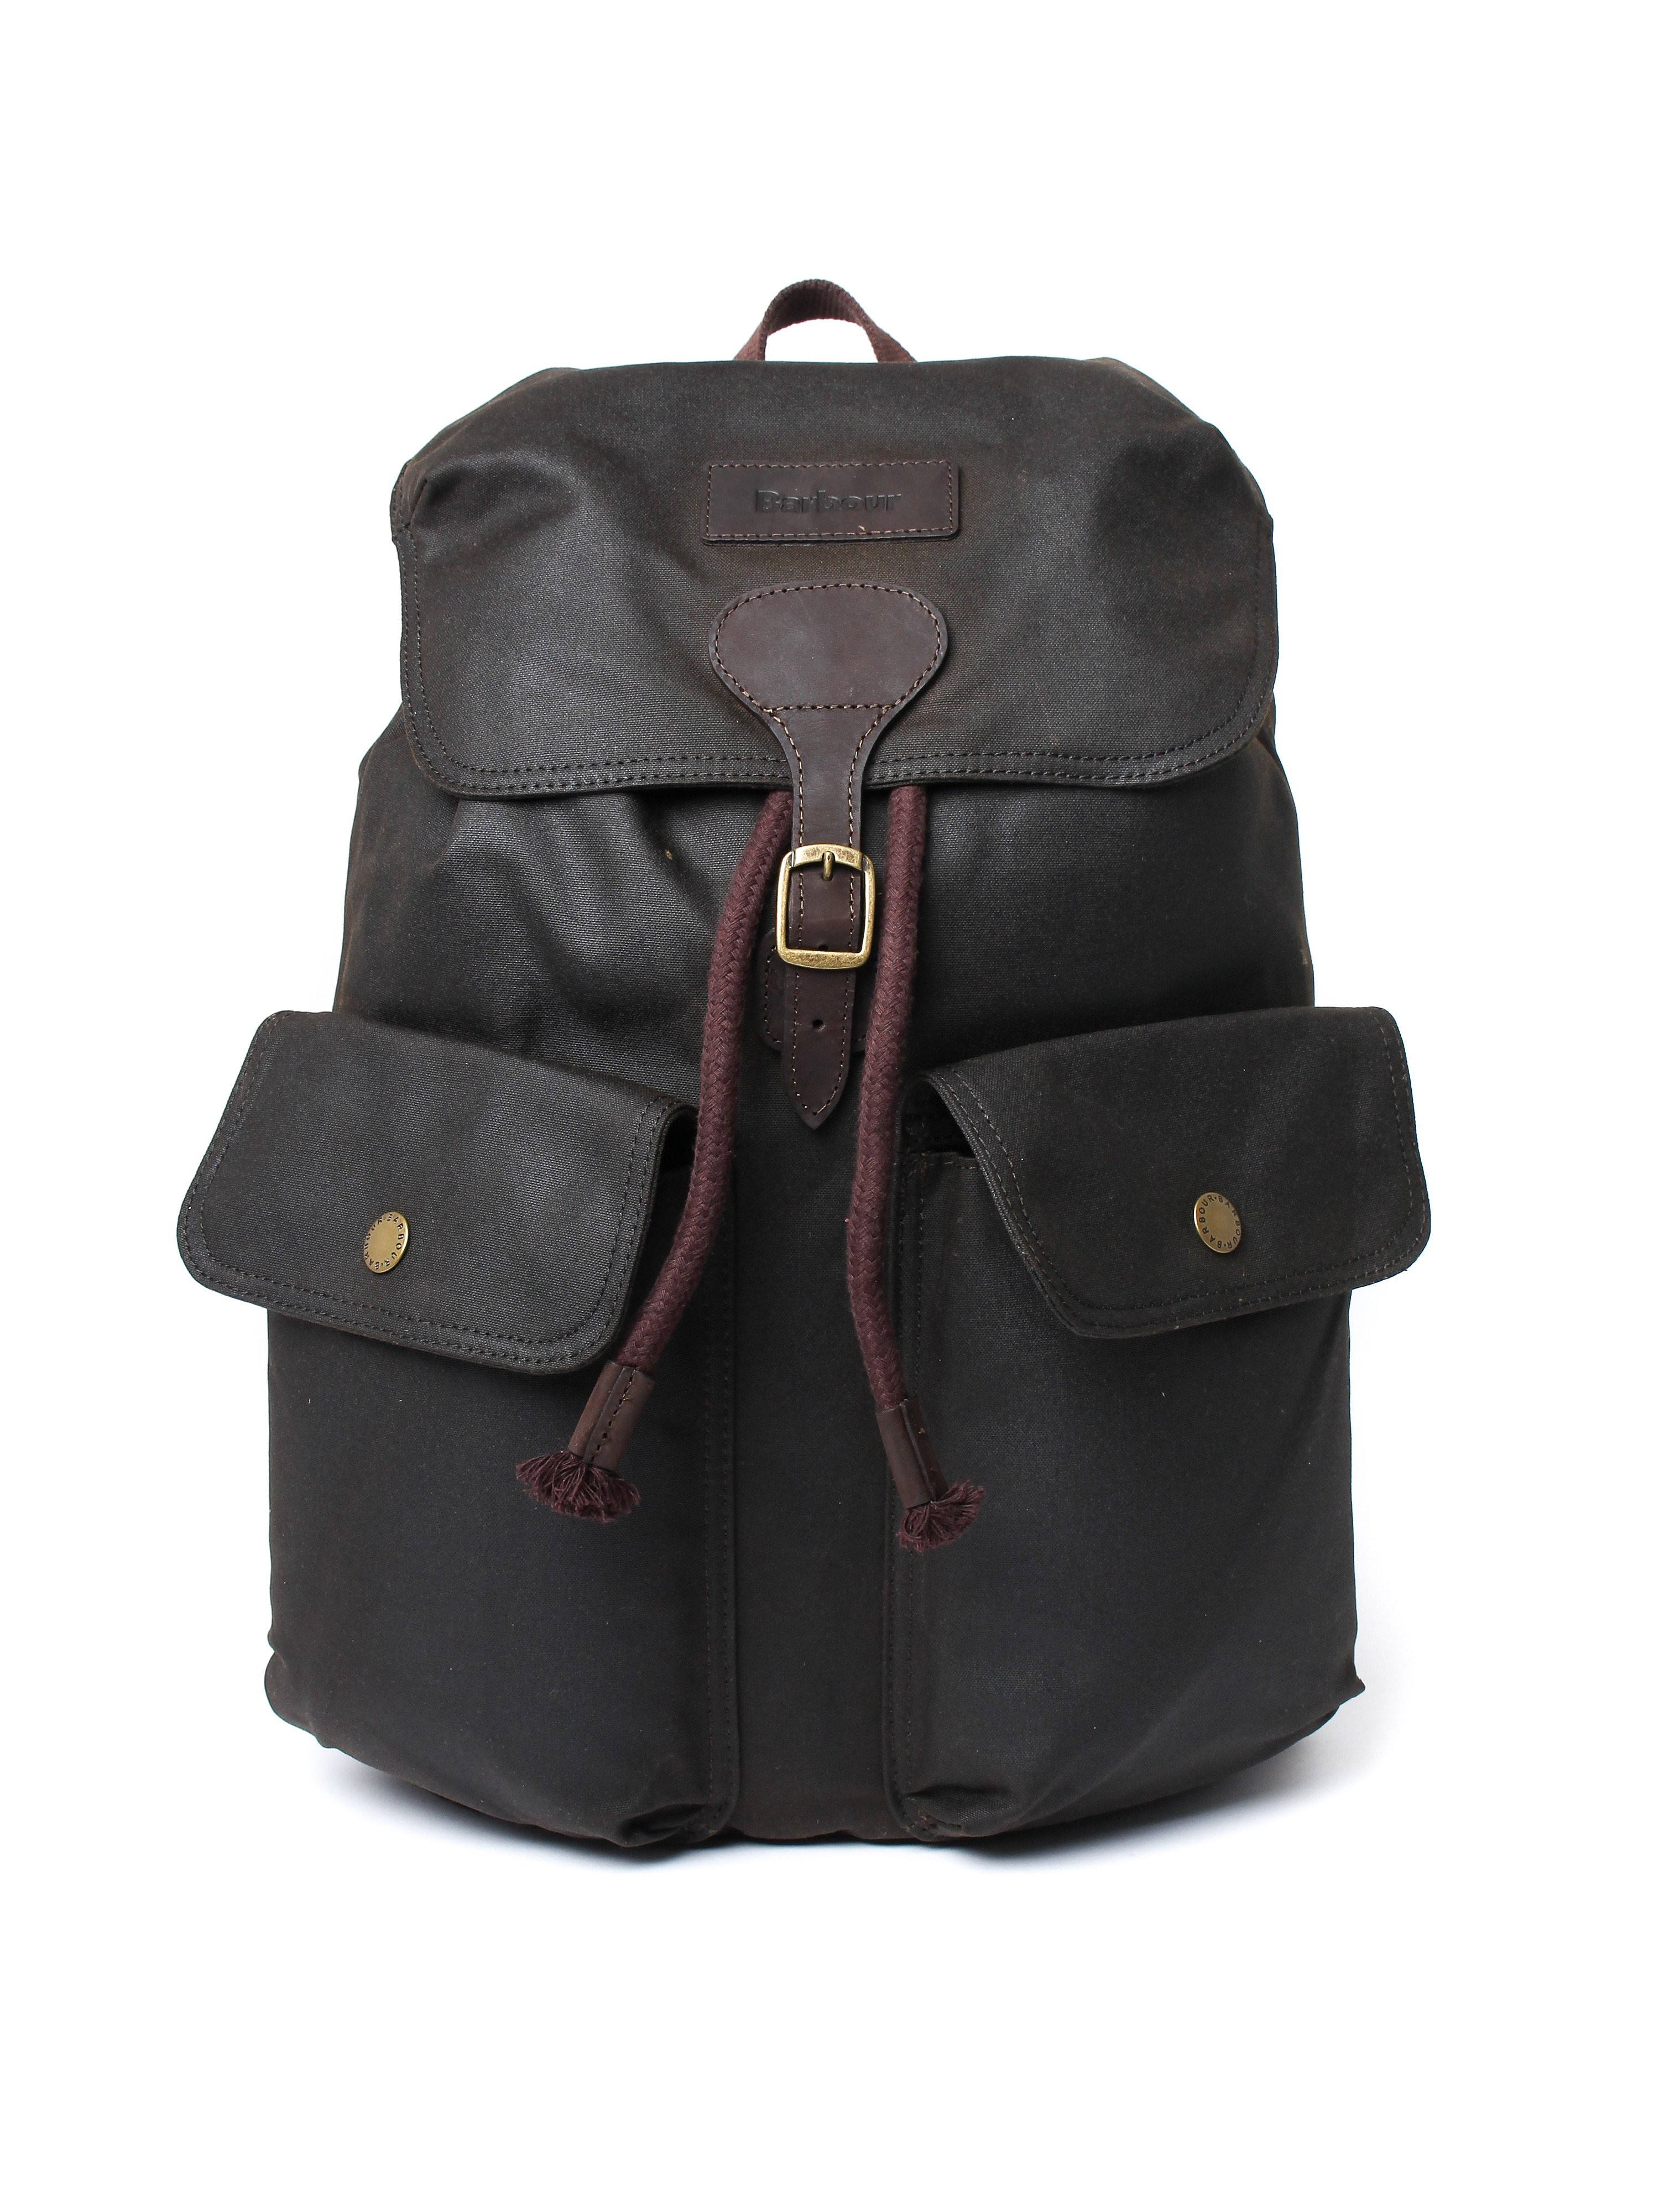 Barbour Beaufort Wax Leather Backpack - Olive